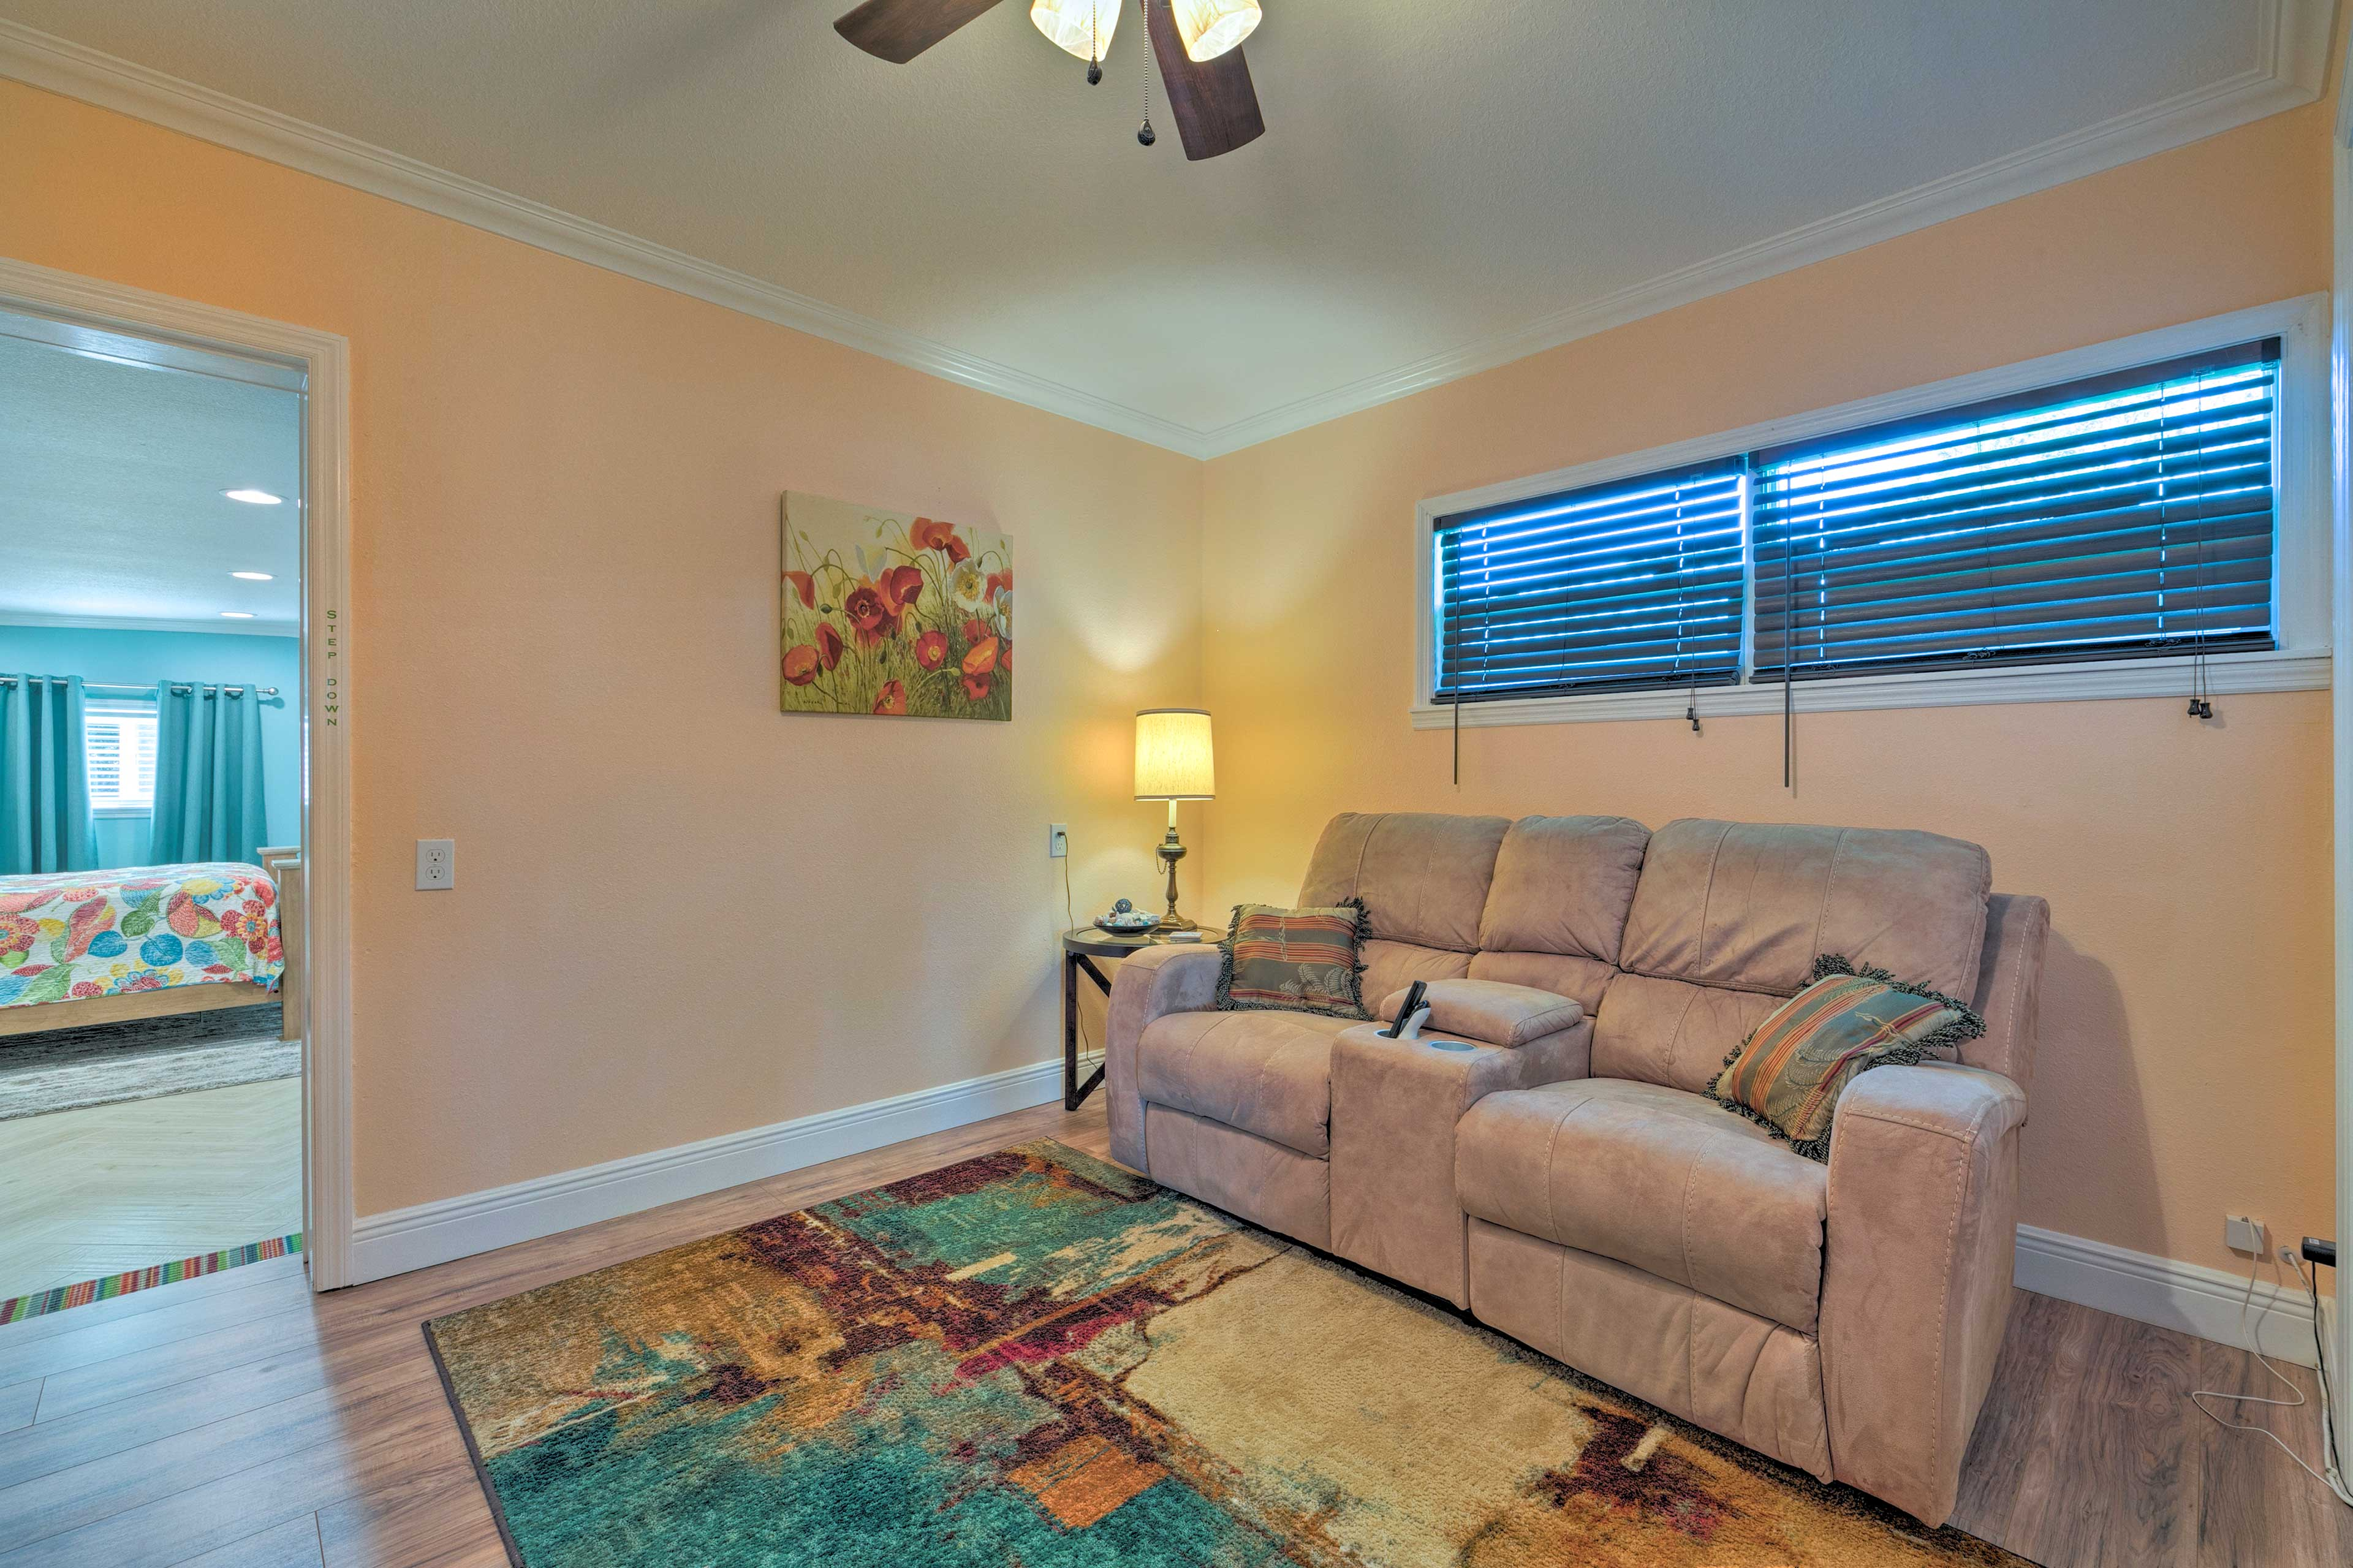 The movie room boasts comfy seating and a TV.